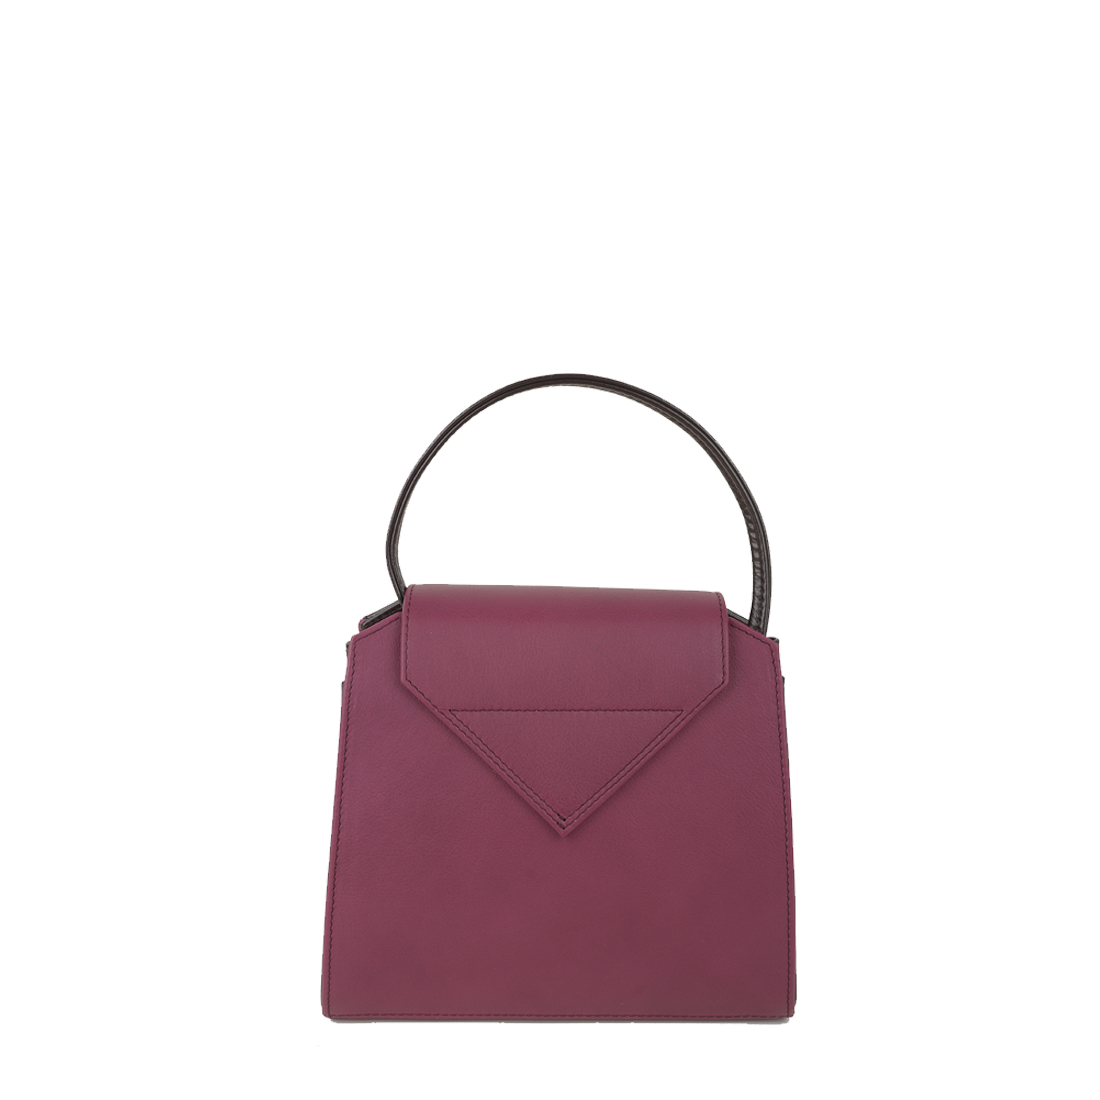 Yasmin Magenta Plum Leather Evening Shoulder Bag